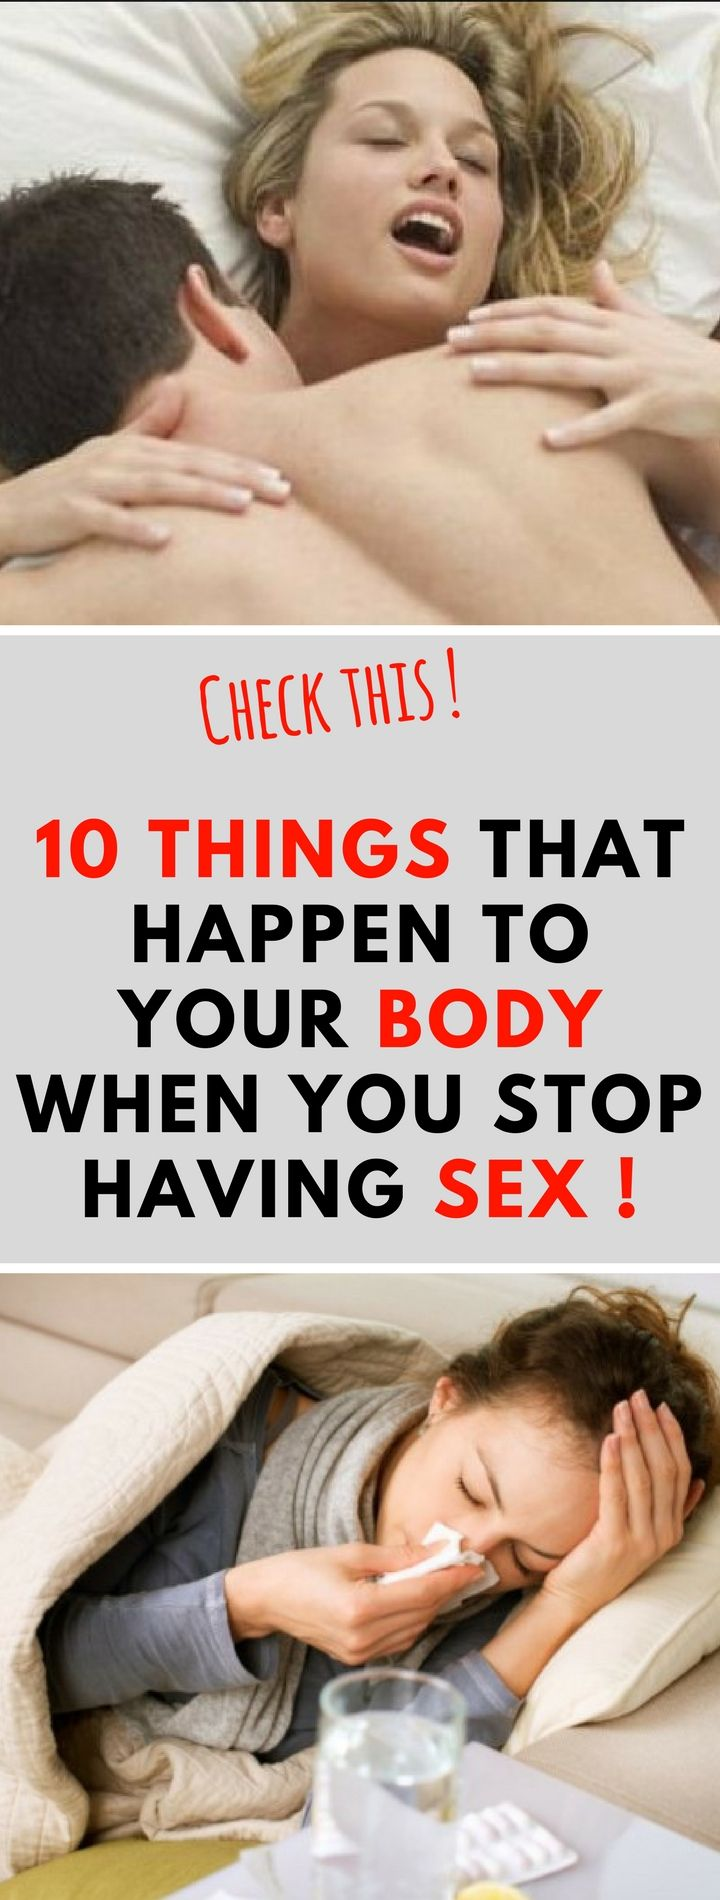 10 THINGS THAT HAPPEN TO YOUR BODY WHEN YOU STOP HAVING SEX..